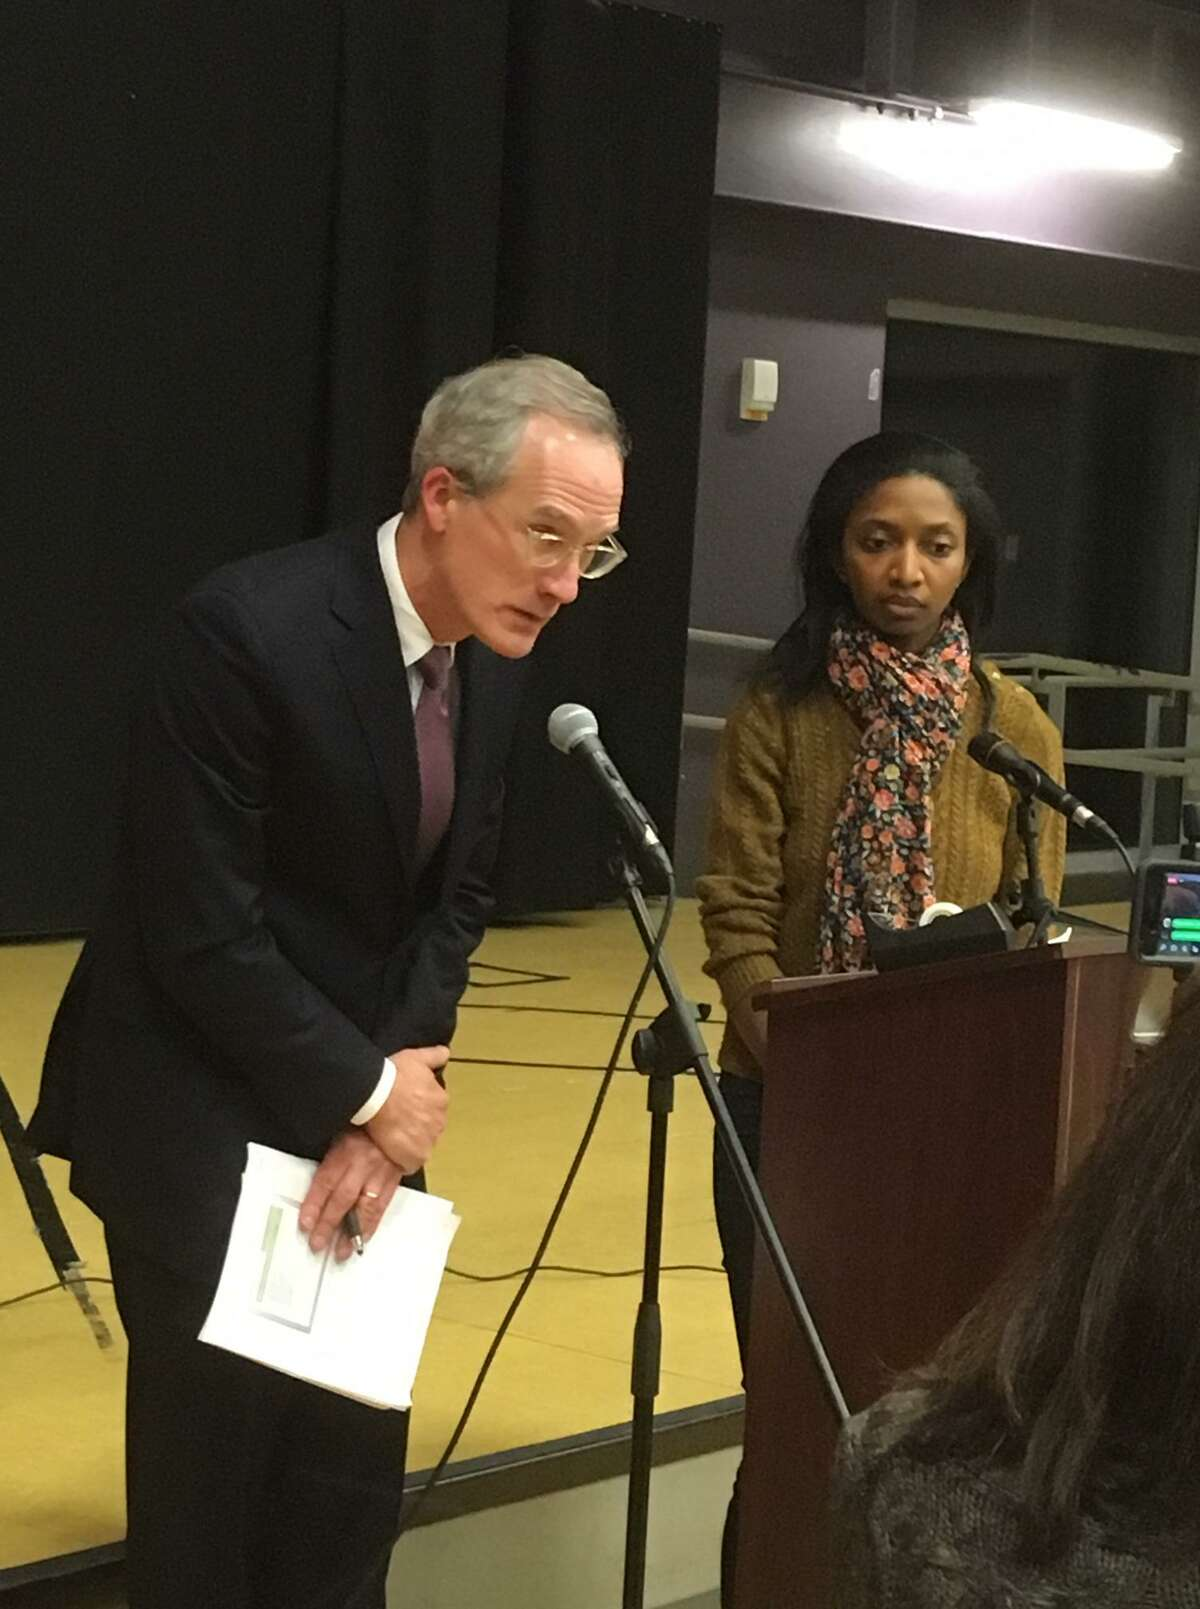 City Council members Pete Spain and Christina Smith address a community forum held at Black Rock School. Jan. 16, 2019